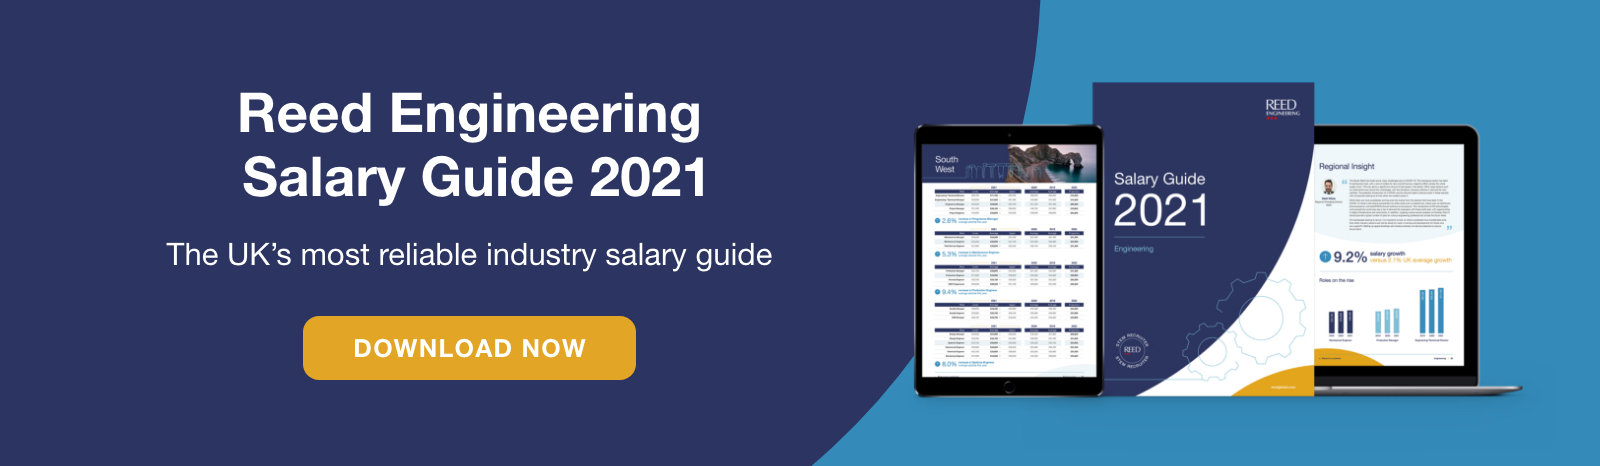 The Reed Engineering 2021 Salary Guide features the engineering and manufacturing salary data you need to understand the market rate and know your worth